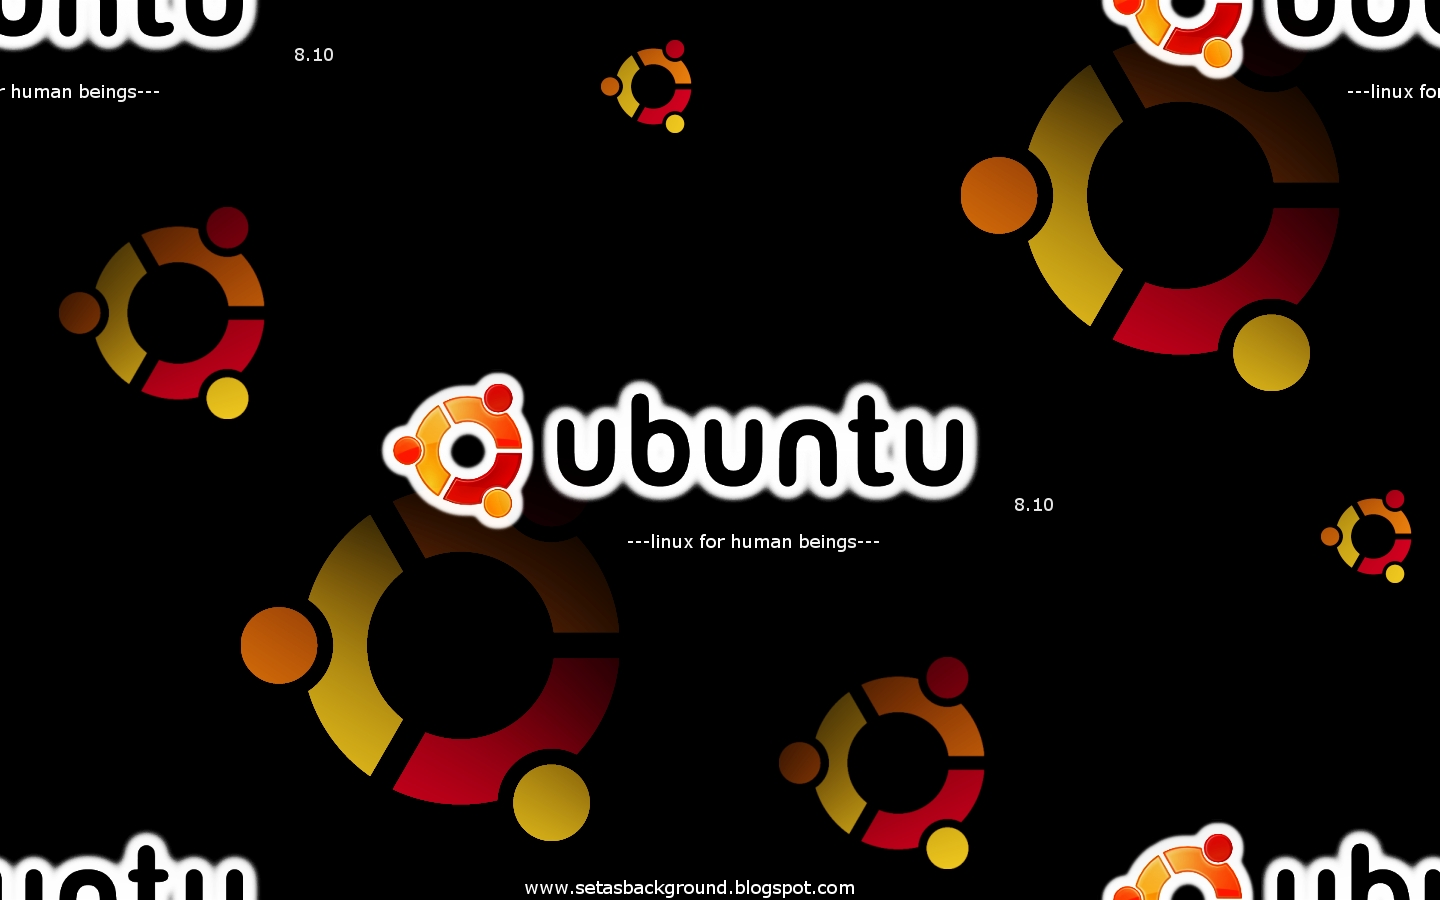 Calebrating Ubuntu! wallpapers | Calebrating Ubuntu! stock ... Ubuntu Server Wallpaper